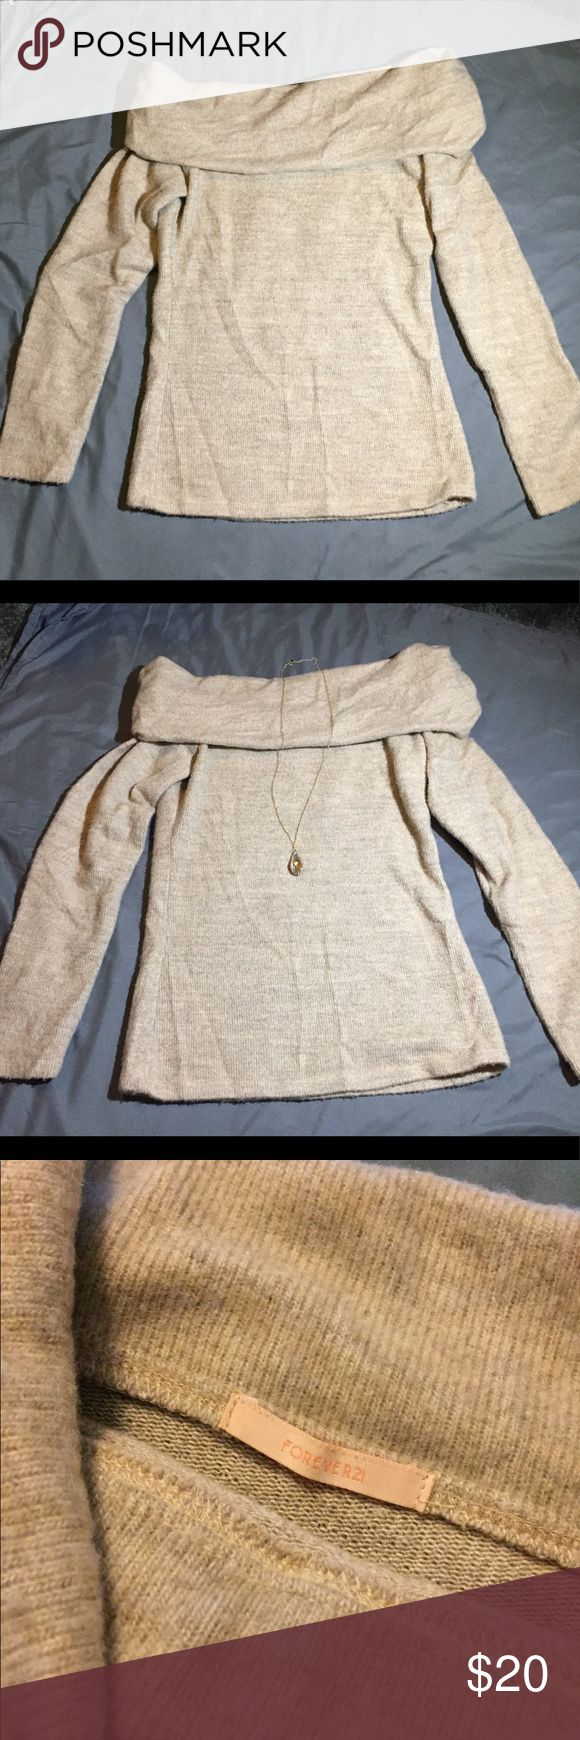 Romantic Off the Shoulder Cozy Bardot Sweater Cute and cozy- the best combination! This off the shoulder sweater is so soft and can be worn in so many ways. Size medium, but would also look good & have a nice relaxed fit on someone who wears a small. Great condition, gently loved. Any questions, feel free to ask!  (Note: necklace in picture is not for sale at this time) Forever 21 Sweaters